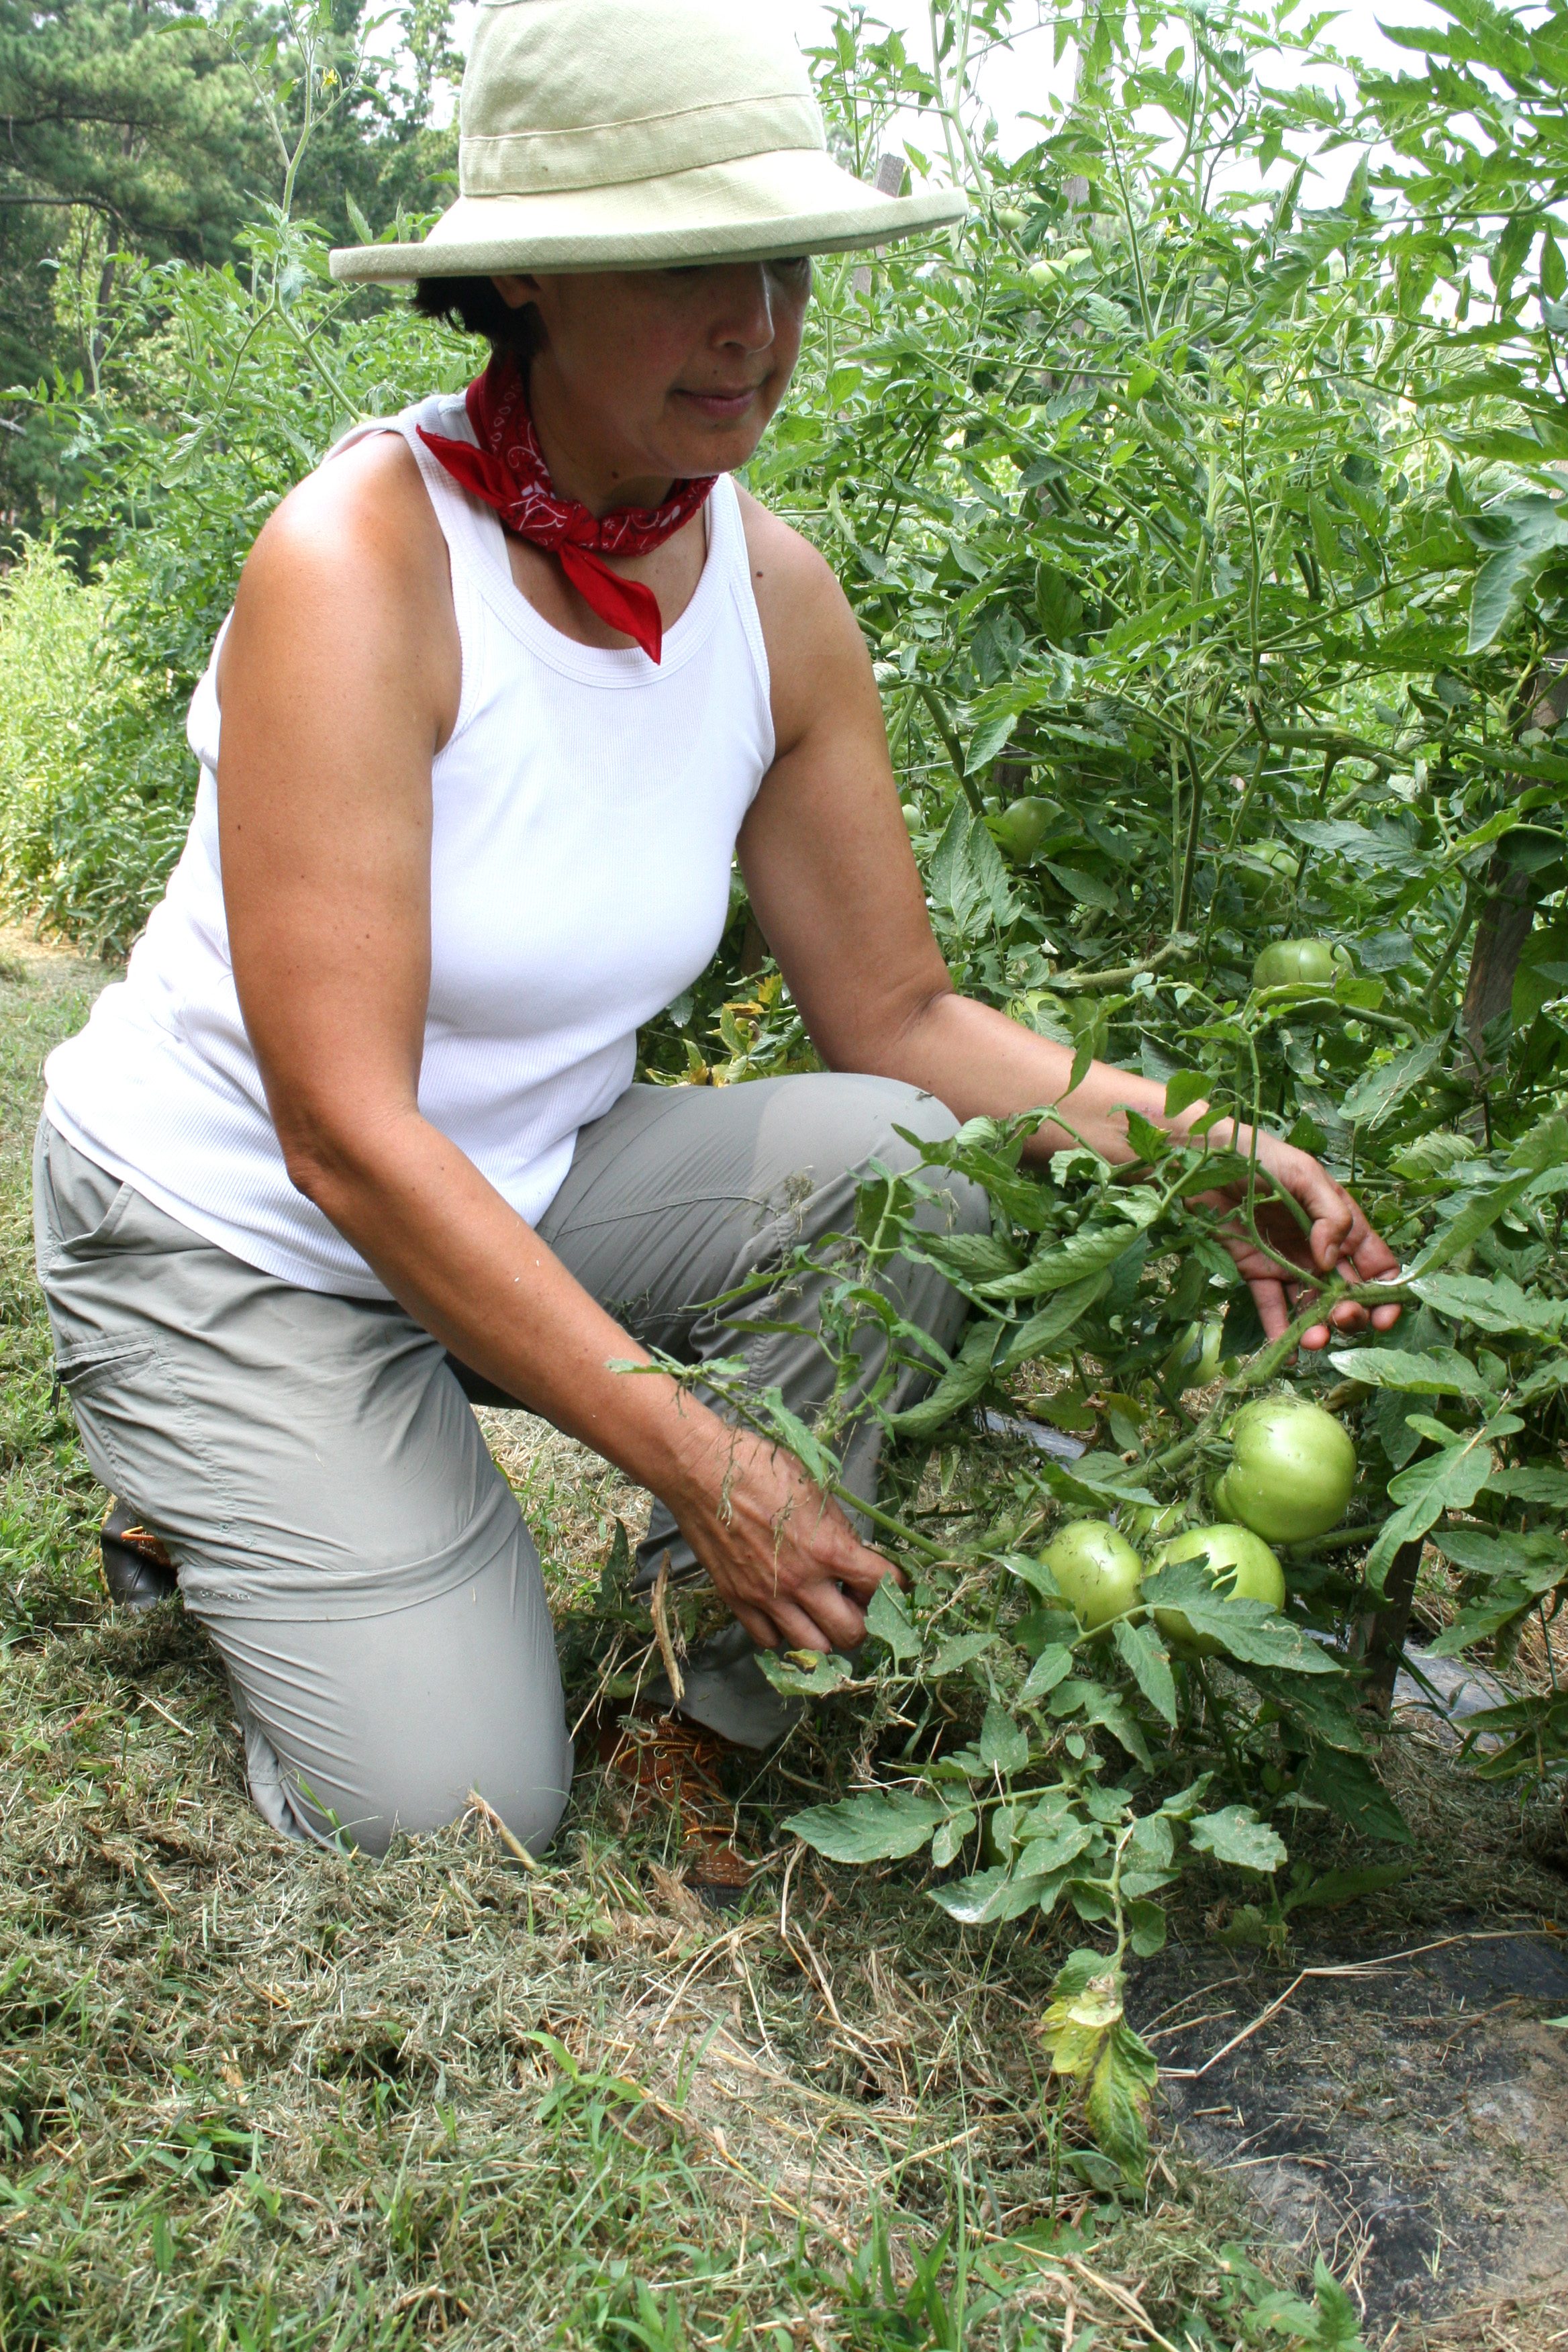 Becky Douville of Able 2 Farm in Fayette County, Ga., trys her best to grow her crops organically. For example, she always grows enough tomatoes to share with the worms.